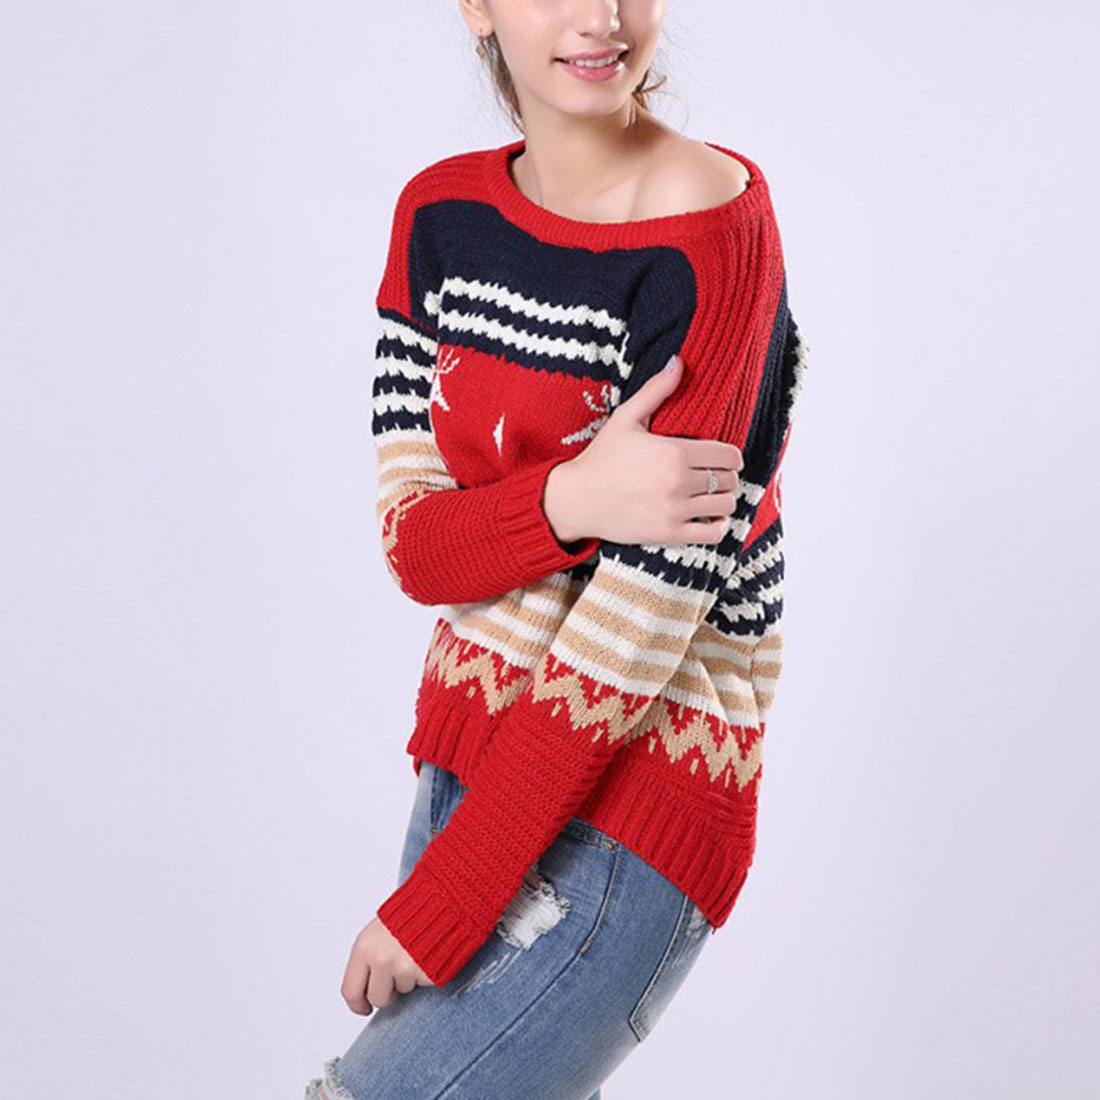 New Autumn Winter Casual Christmas Deer Print Sweater Long Sleeve Irregular Pullover Knitted Jumper Knitwear